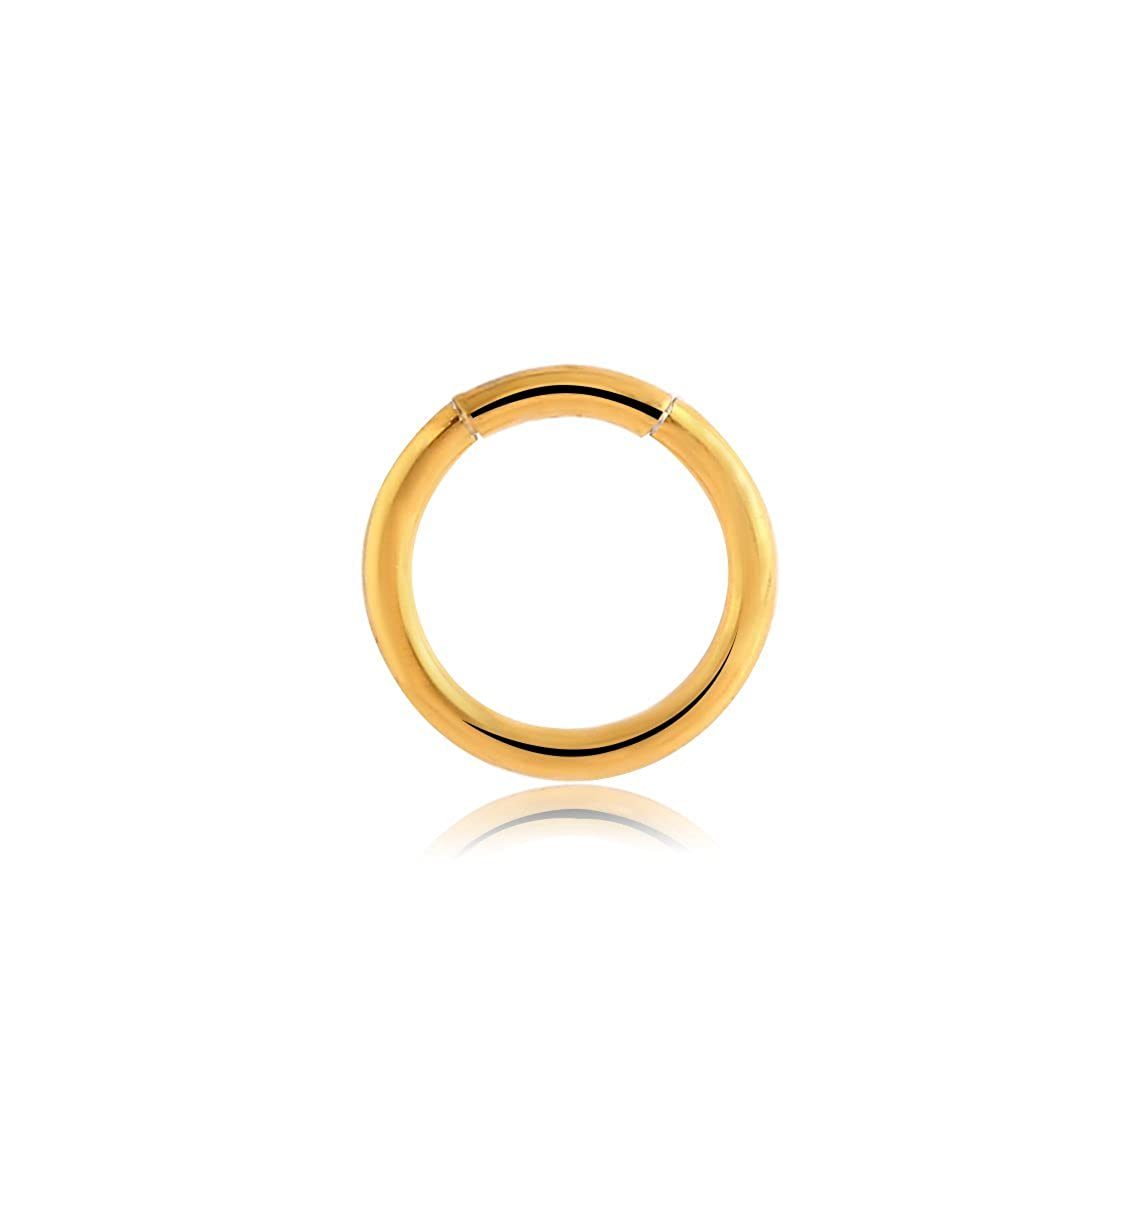 Bubble Body Jewelry Gold Pvd Surgical Steel Smooth Segment Ring 1.2mm Gauge 16g 3//64